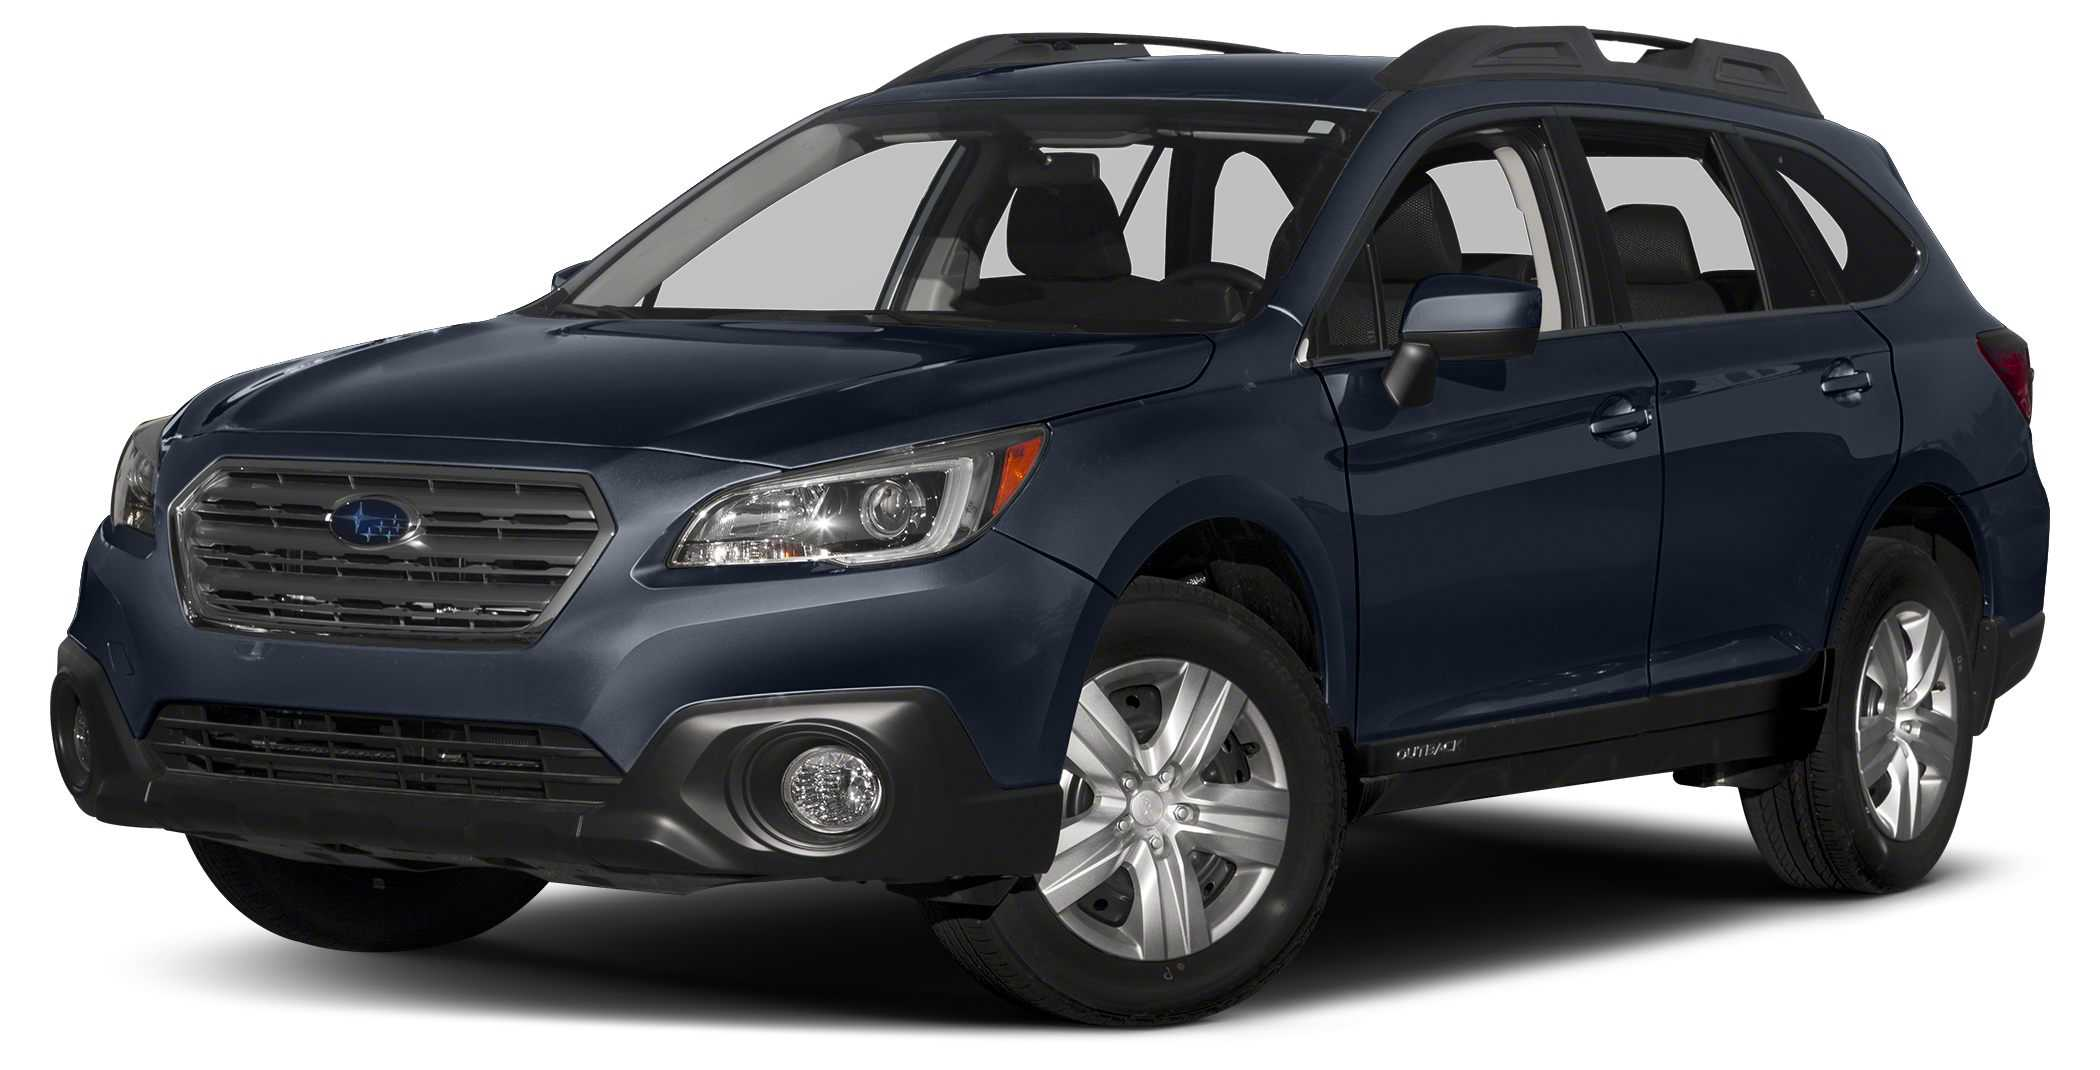 2017 subaru outback for sale in missoula mt 4s4bsaac2h3421726. Black Bedroom Furniture Sets. Home Design Ideas